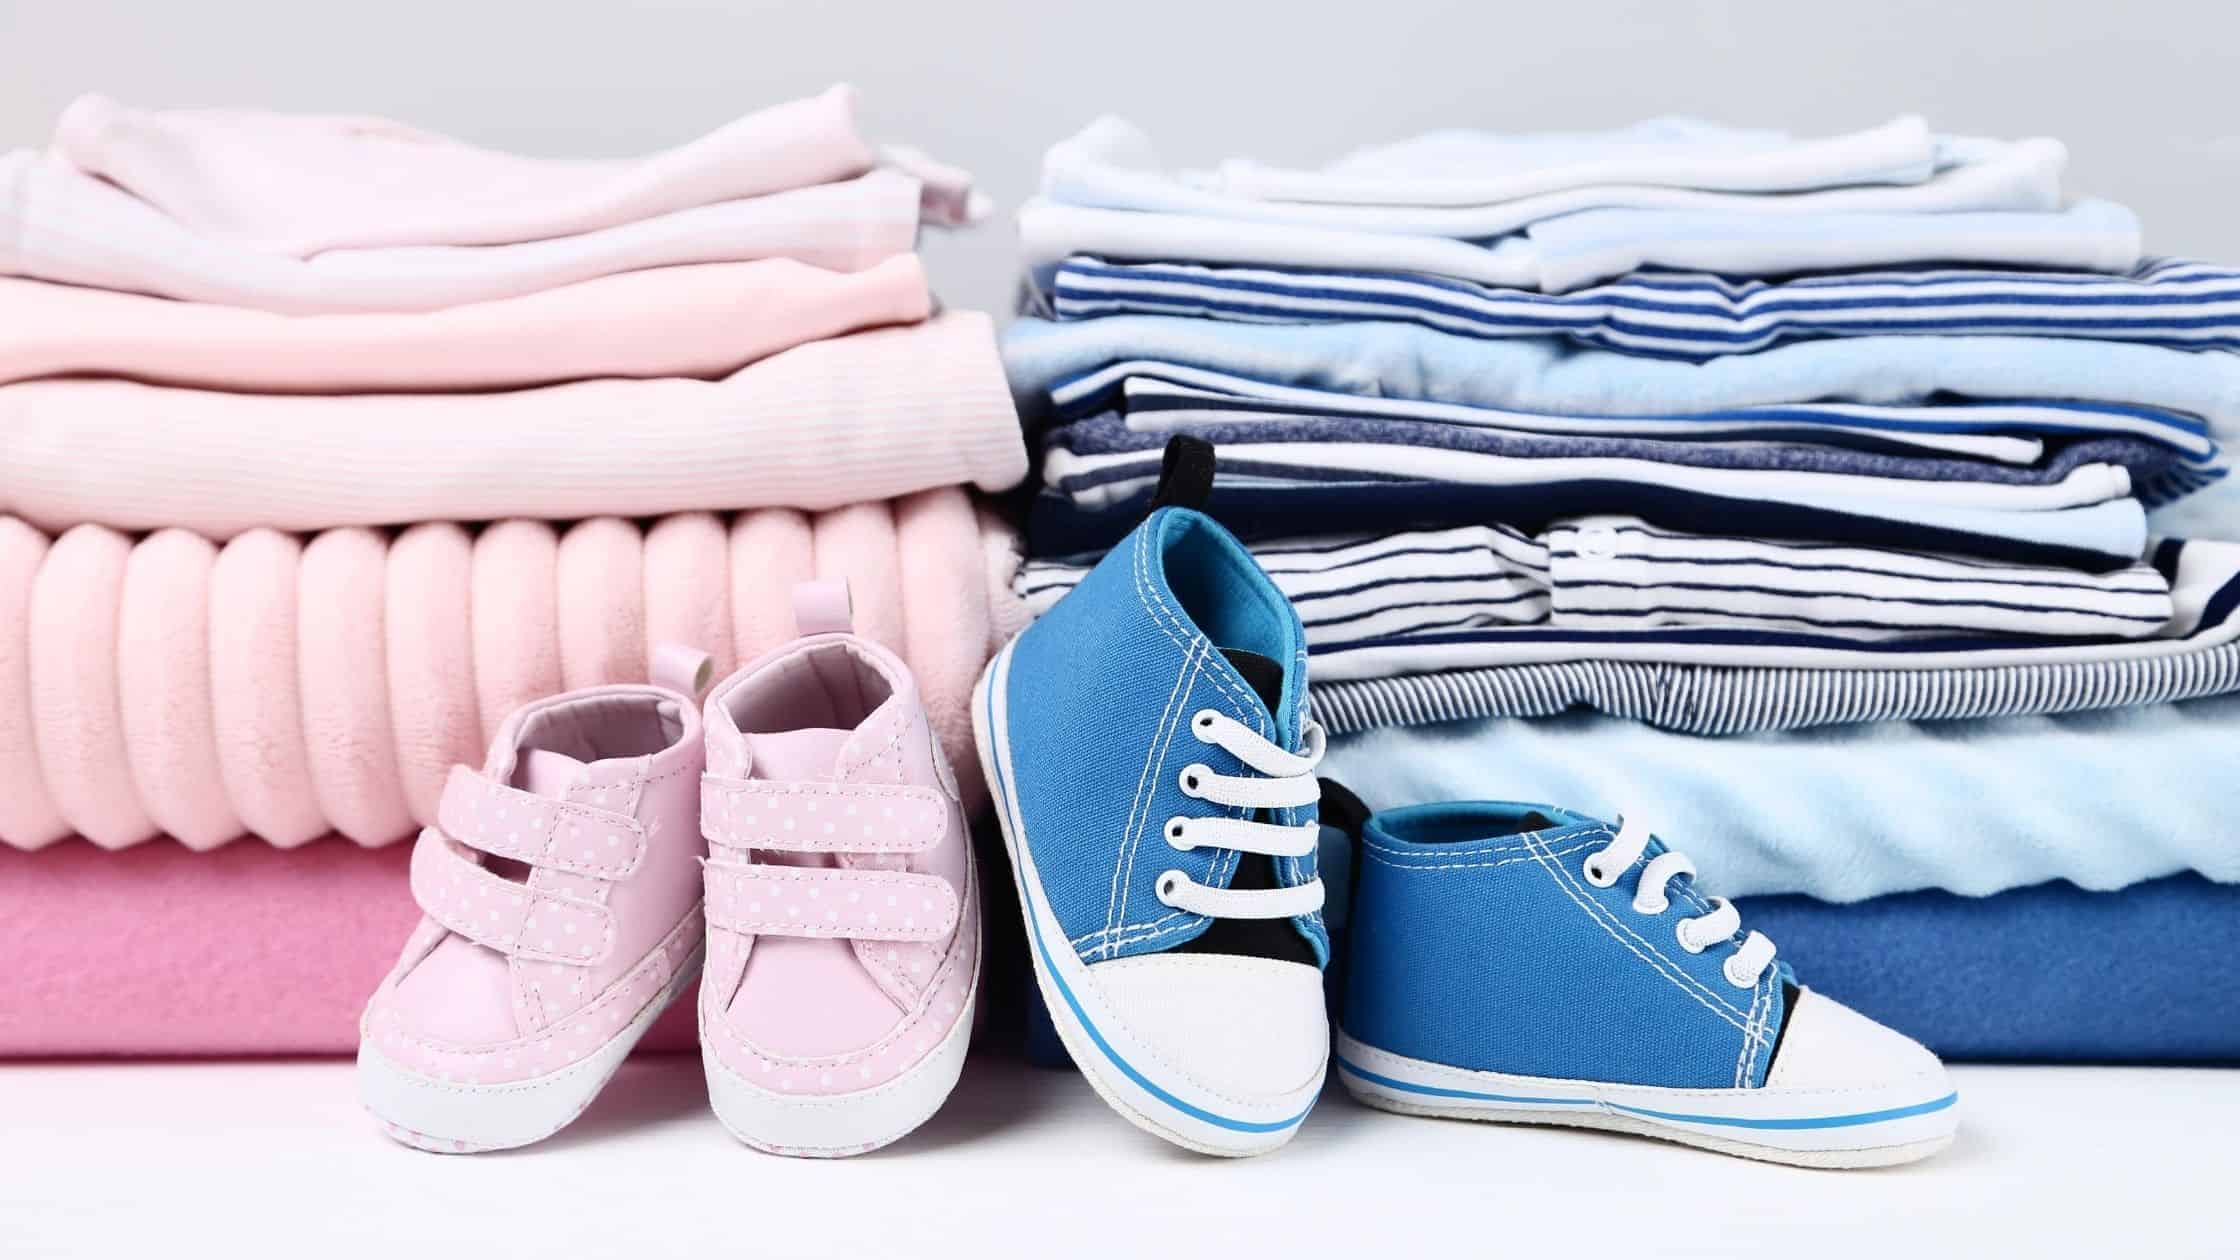 neatly stacked baby clothes in two piles of pink and blue with baby shoes in front too